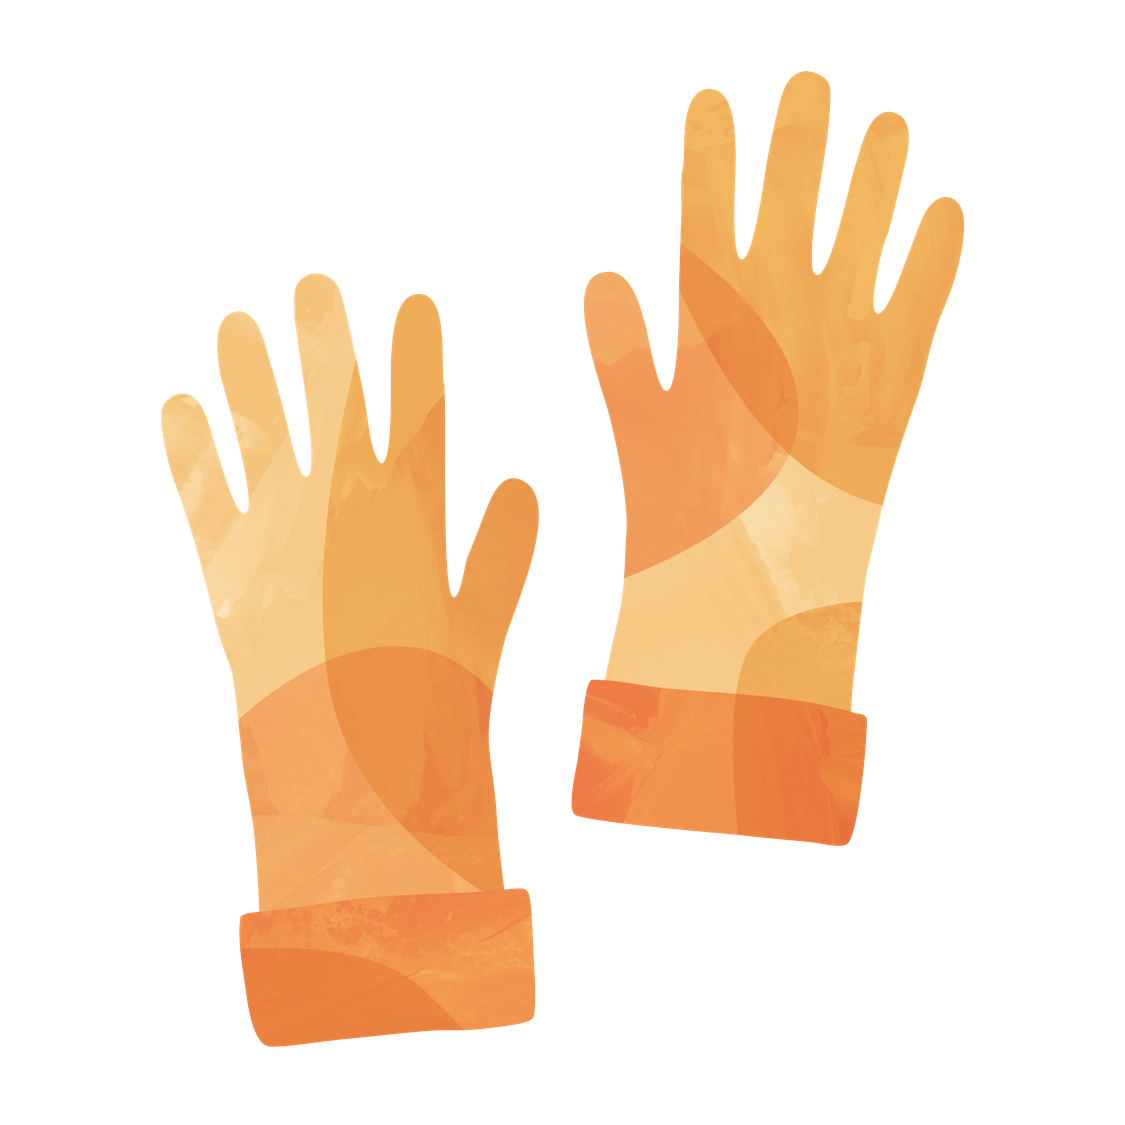 illustration of two orange cleaning gloves